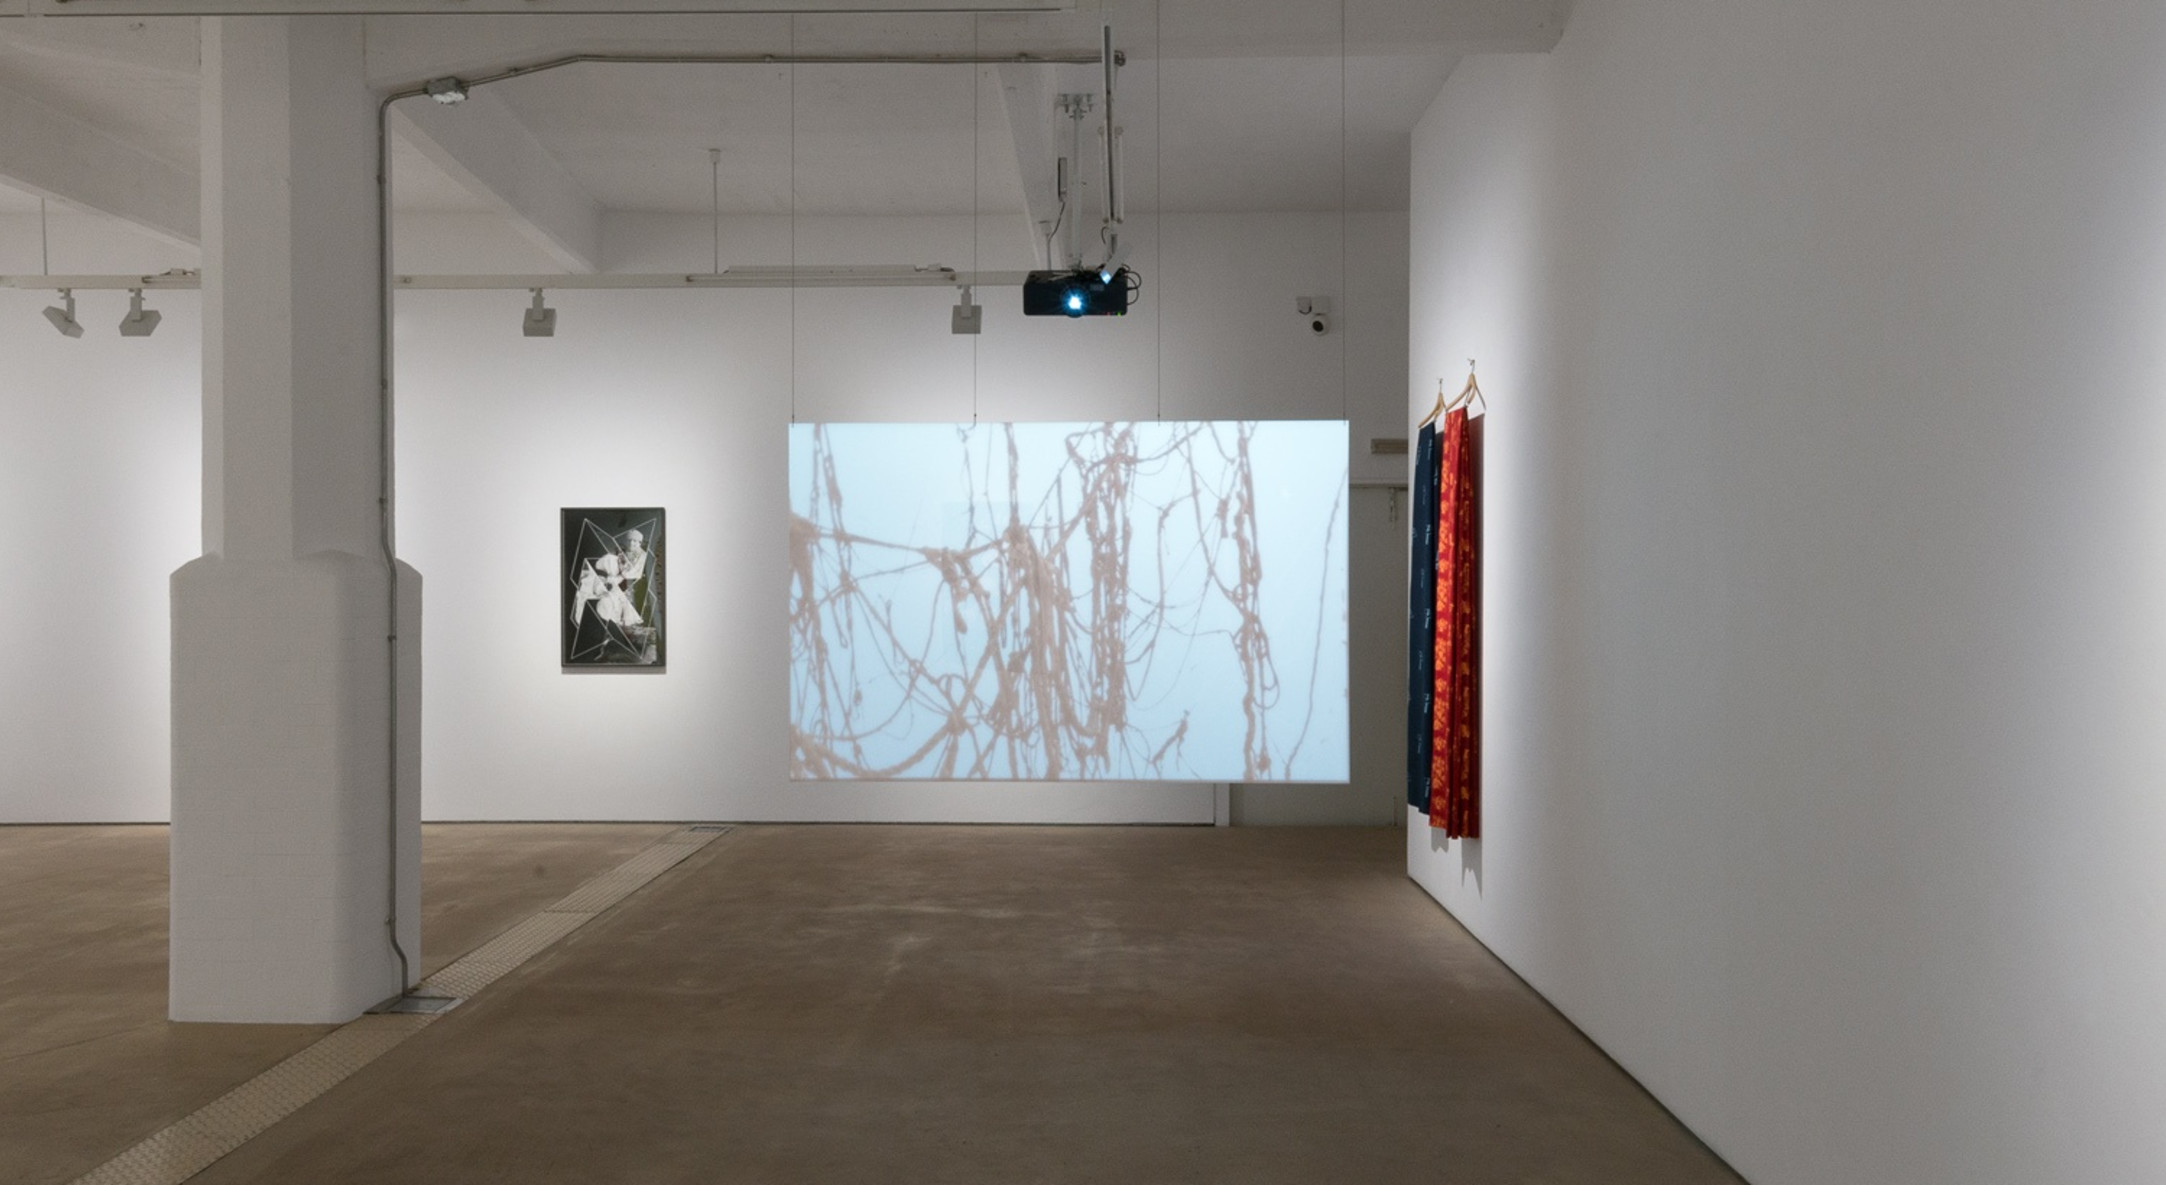 Installation view of Andrea Geyer, If I Told Her at Hales London